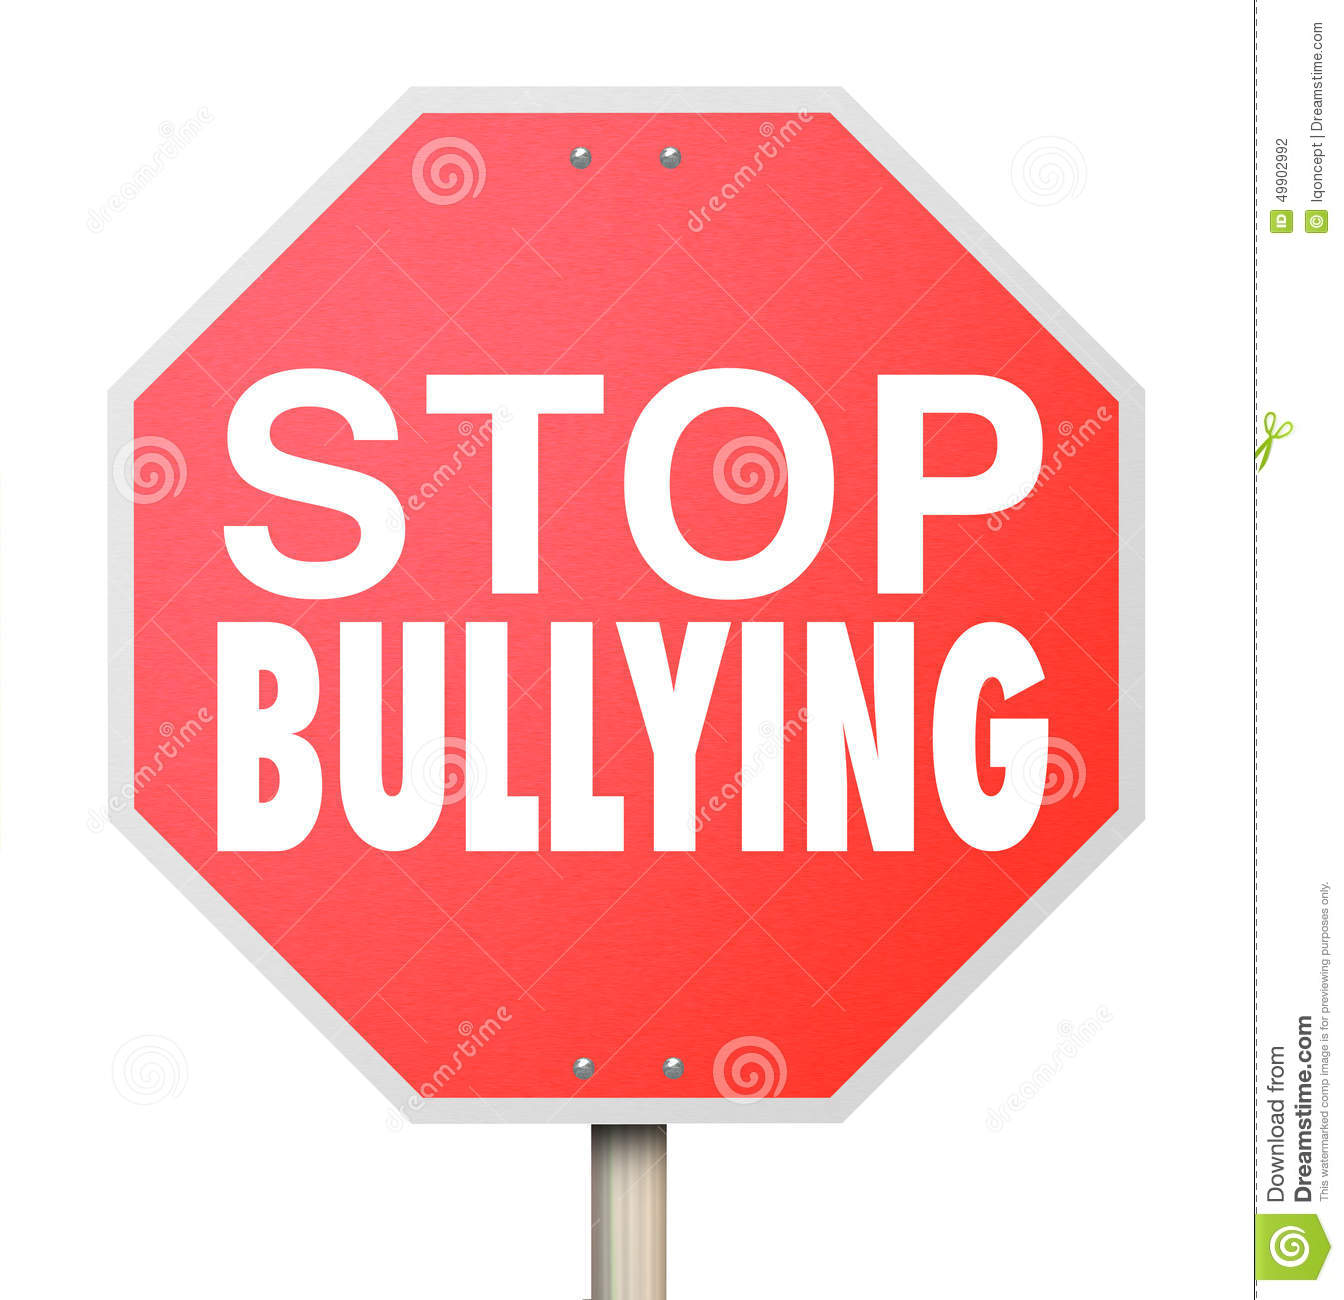 fight to stop bullying essay Living in the world of high technologies gives us not only advantages, it also provokes new kinds of problems in this essay we are going to talk about cyber crime, in particular cyber bullying cyber bullying is a phenomenon when internet communication is used for threatening or humiliating generally speaking it is an ordinary bullying transferred into electronic form.